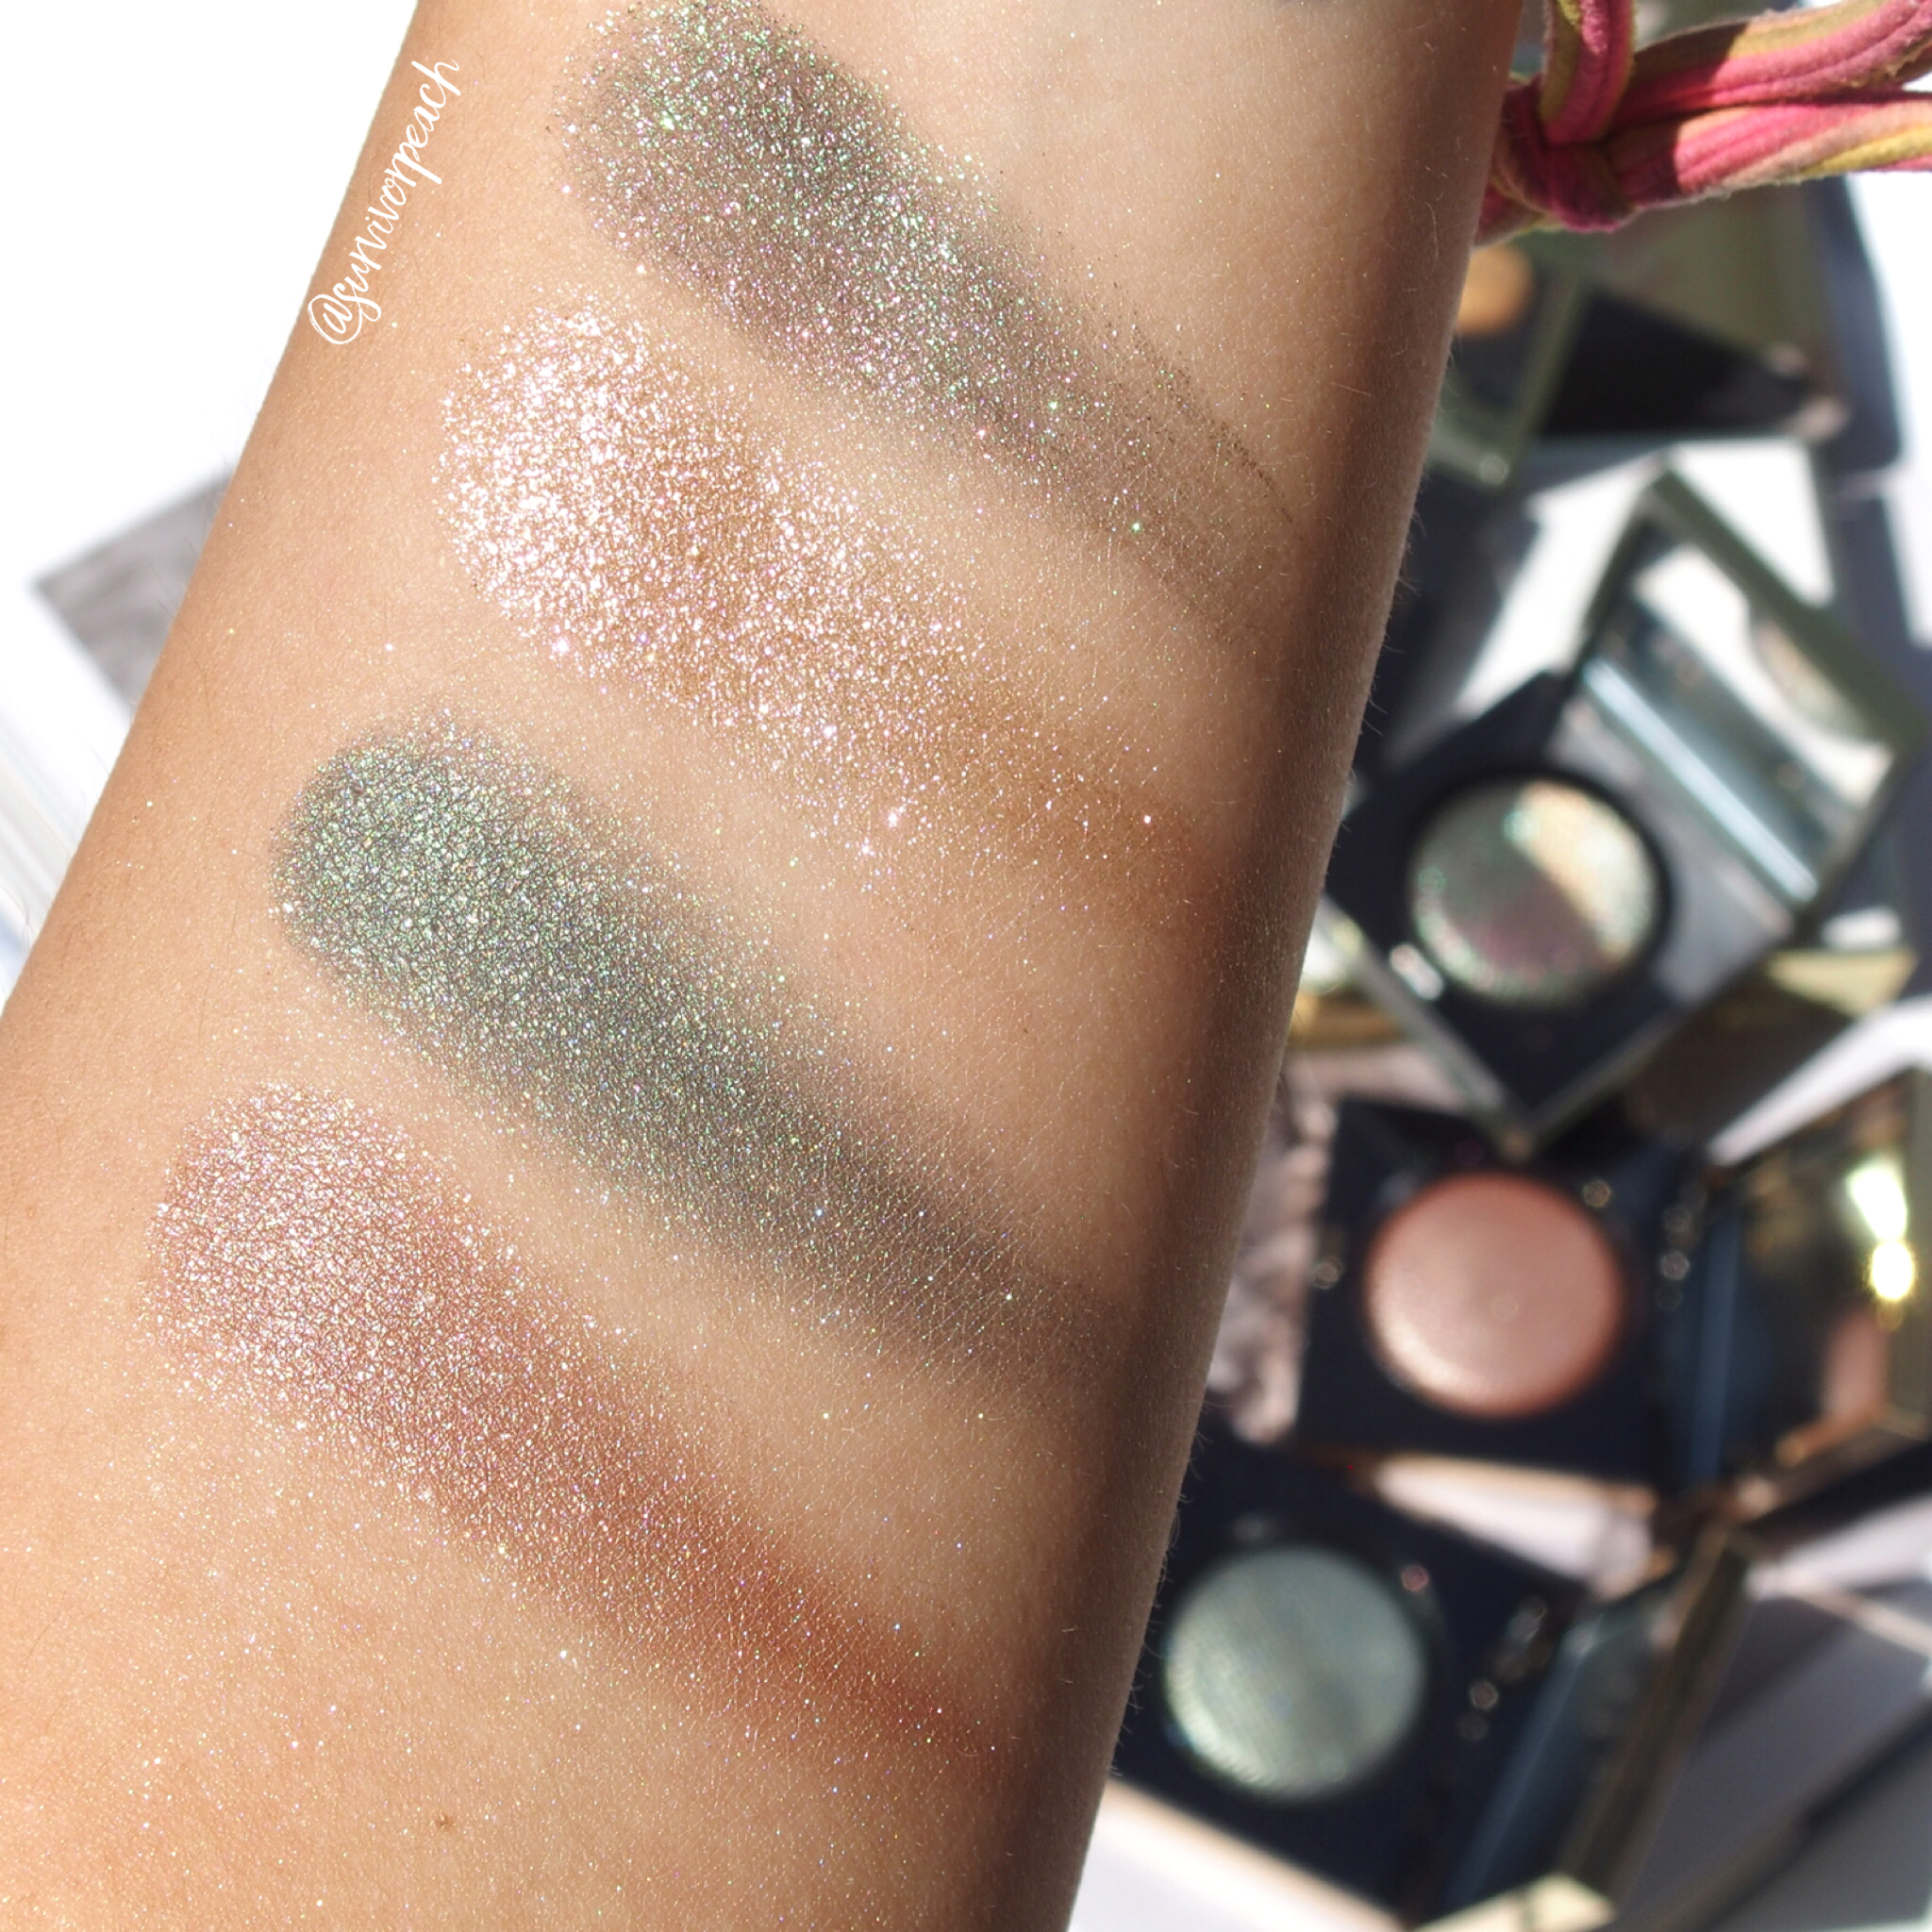 Swatches of the Bobbi Brown Luxe eyeshadows in Jungle, Incandescent, Poison Ivy, Melting Point.